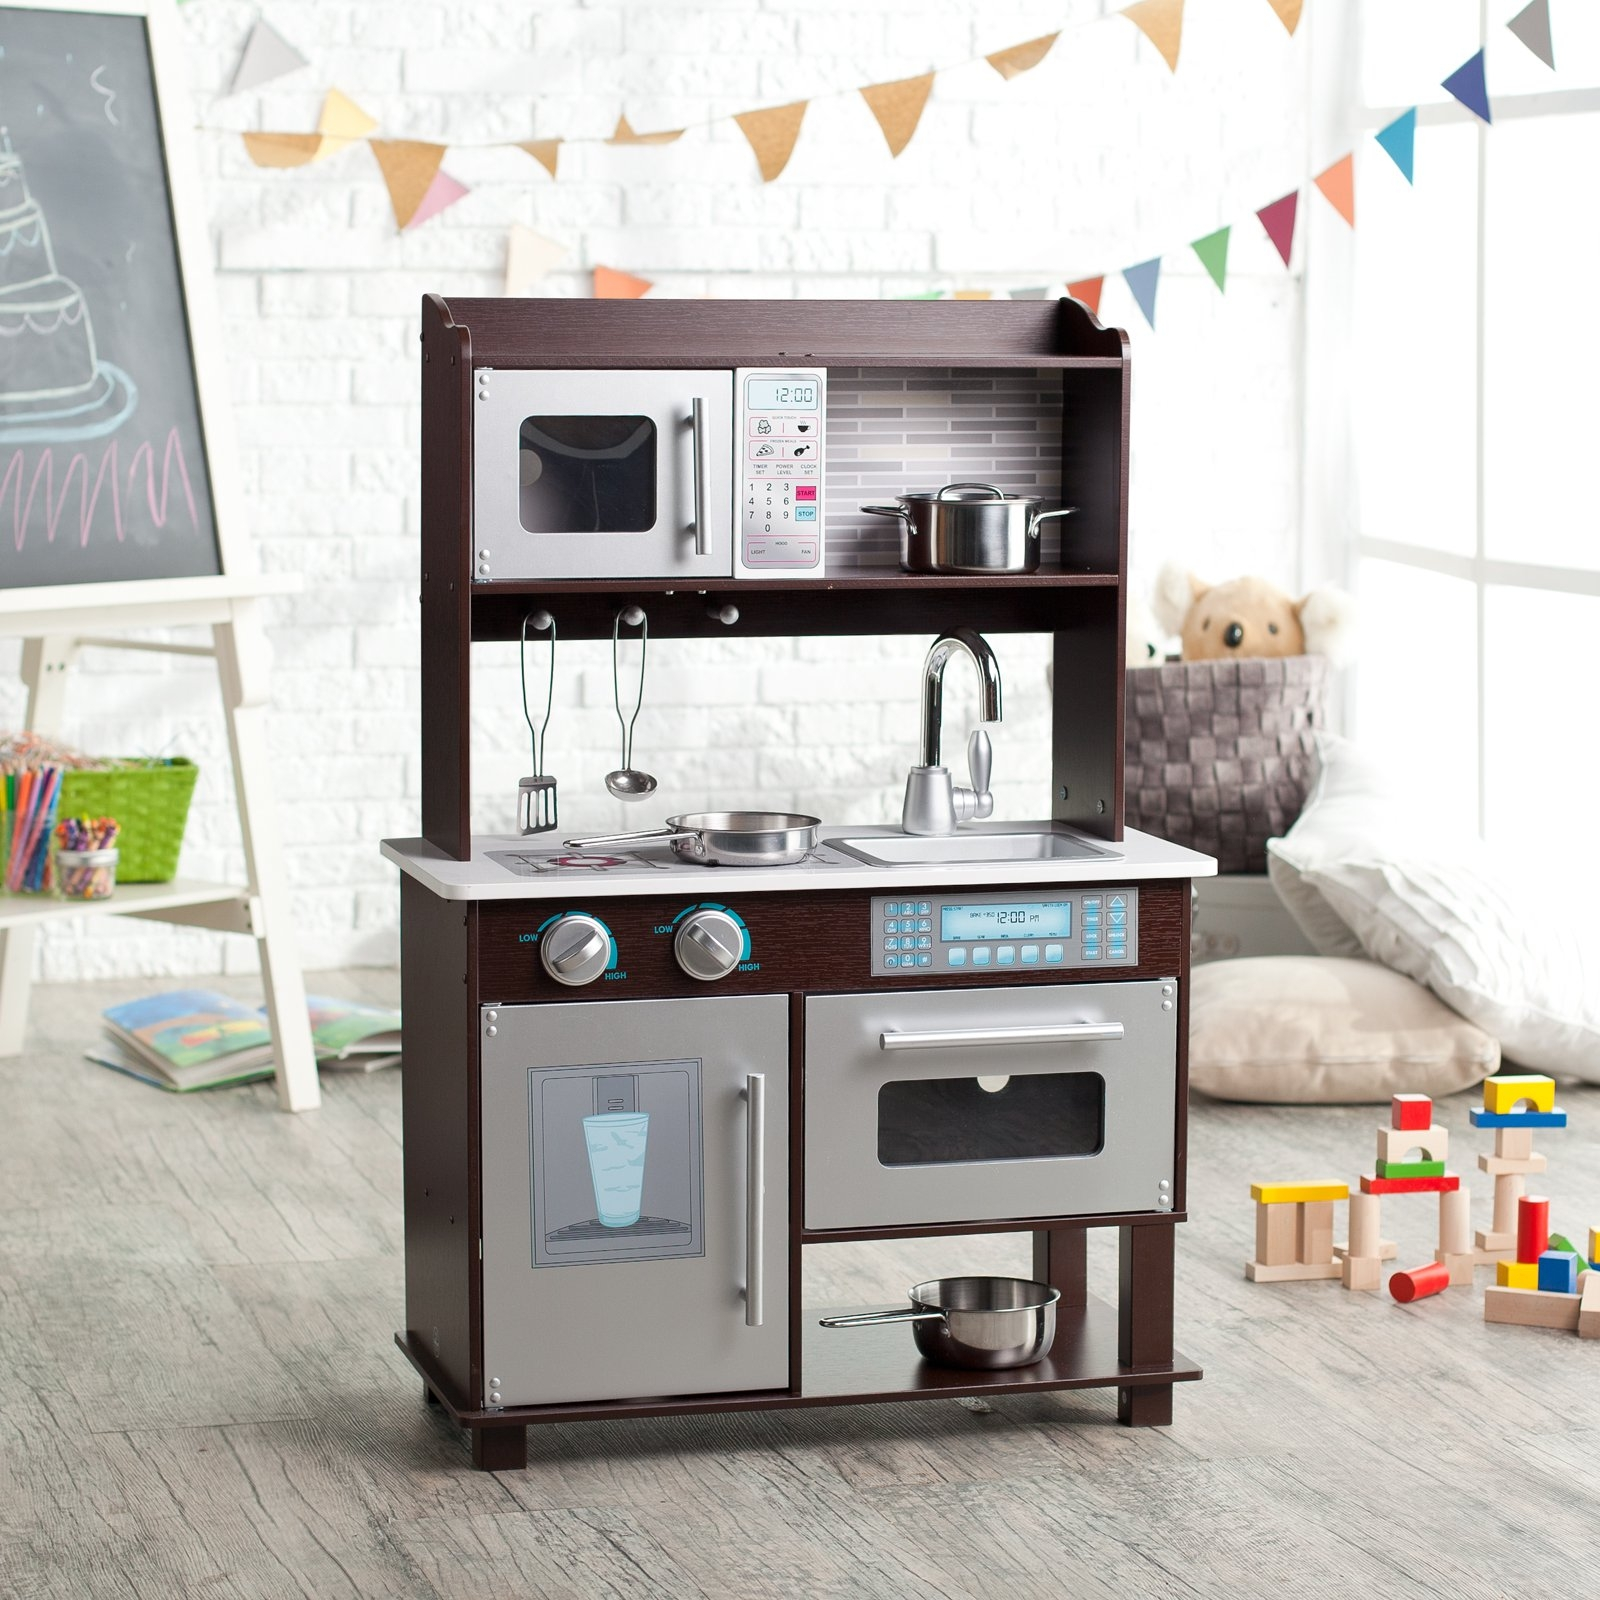 Permalink to Toddler Play Kitchen Sets